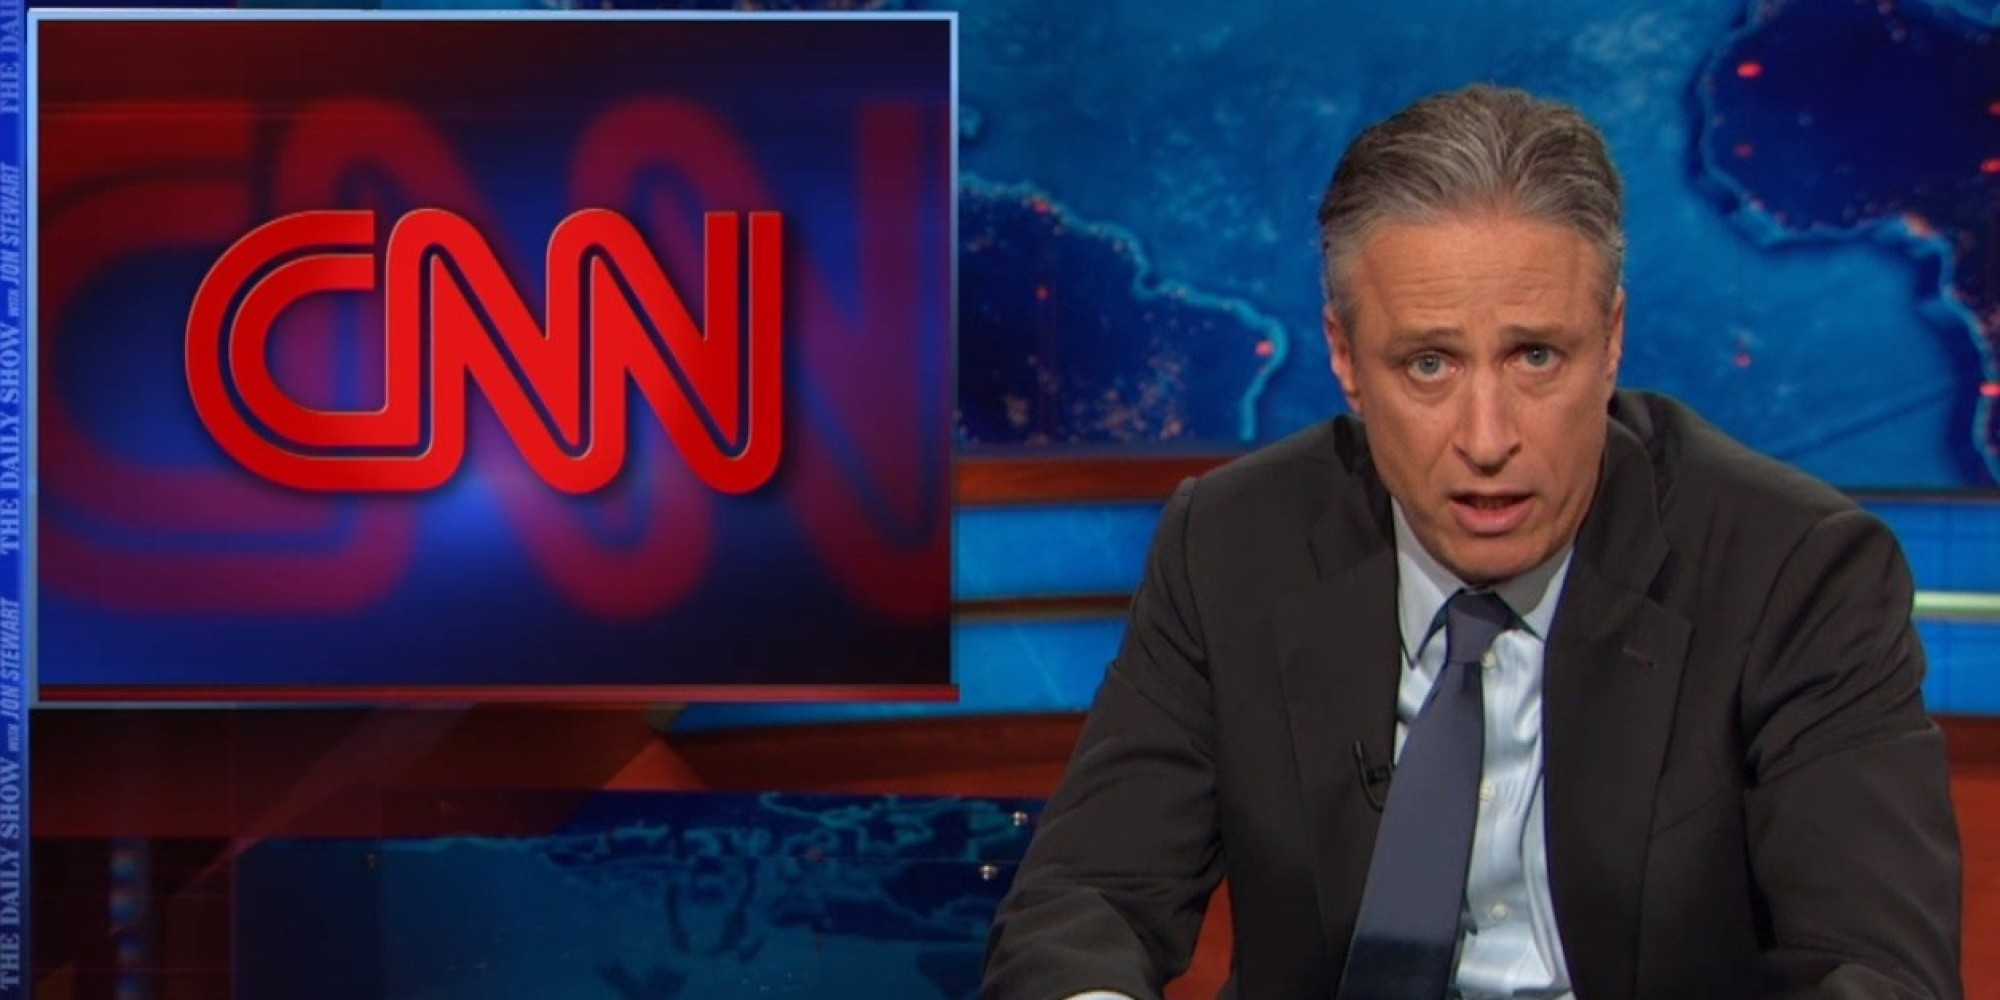 Jon Stewart Wants You To Help Him Buy CNN | HuffPost